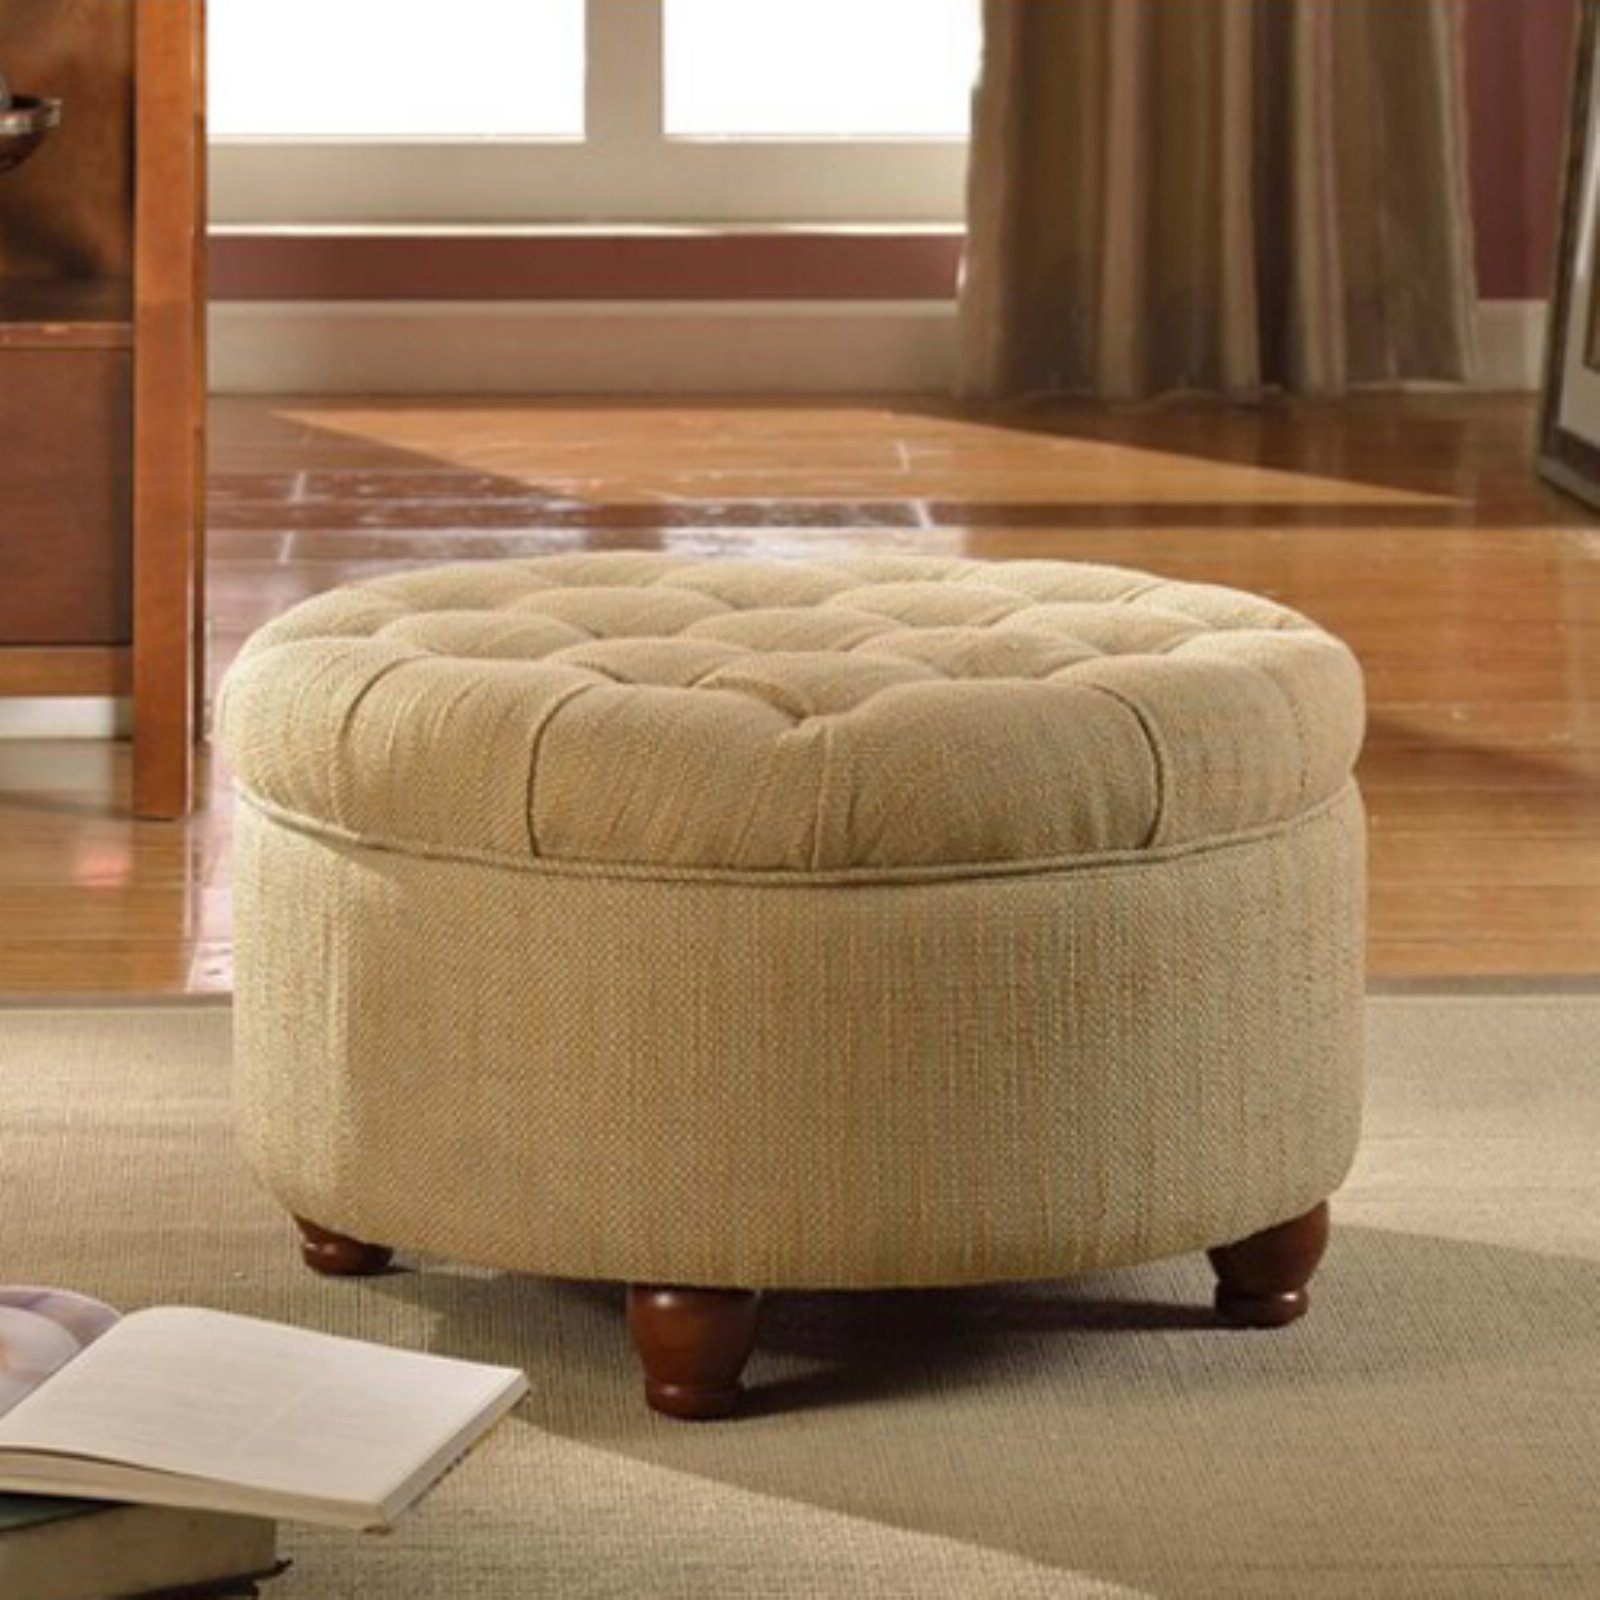 HomePop Tweed Tufted Storage Ottoman, Multiple Colors